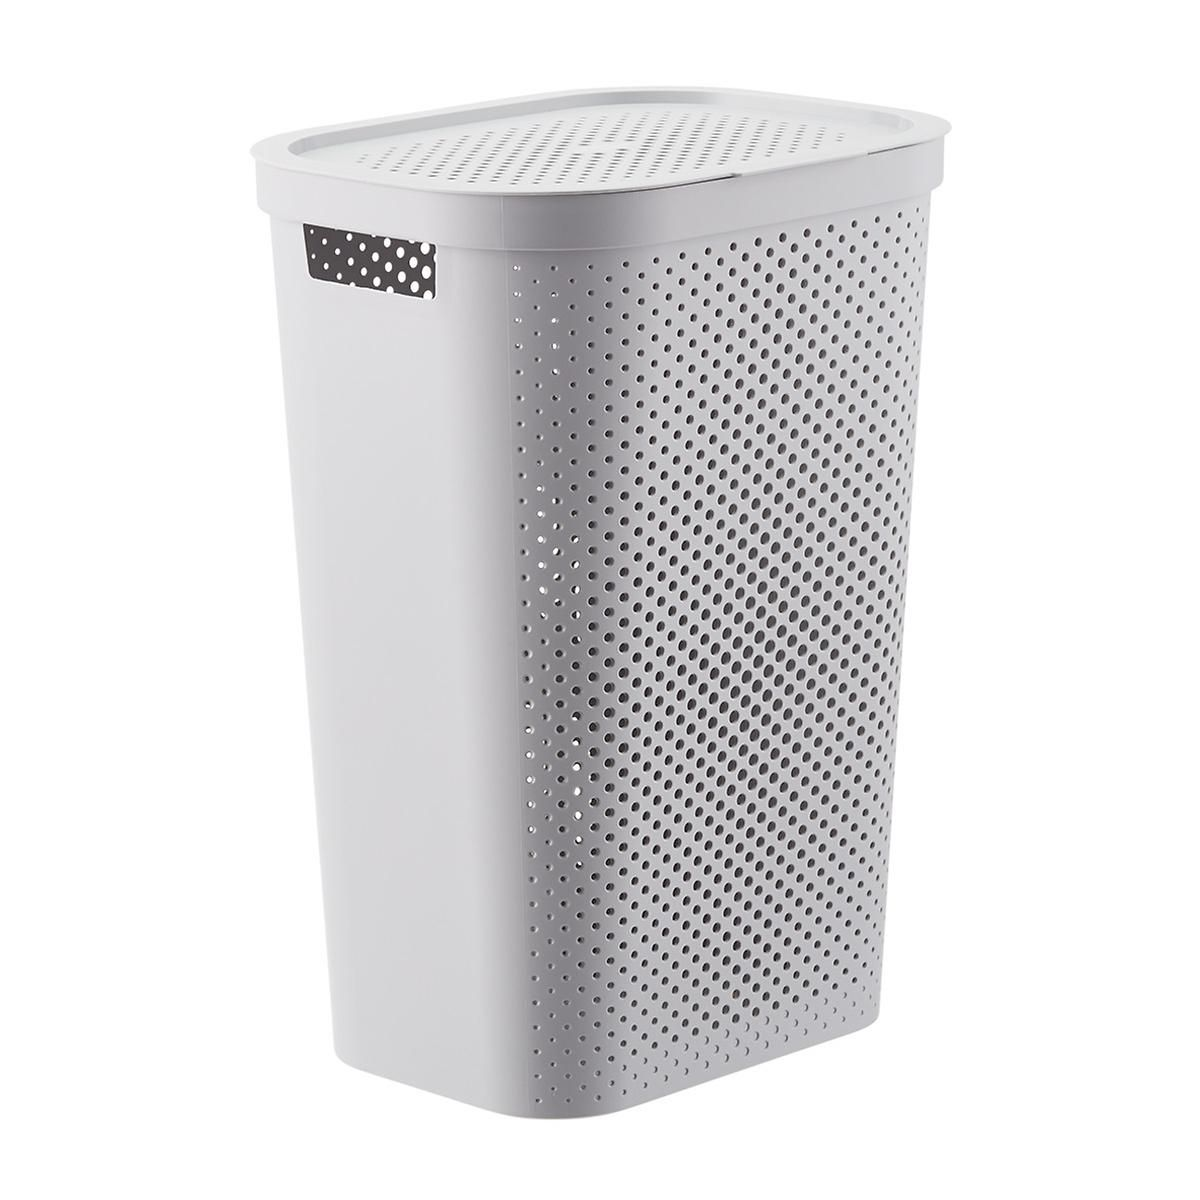 Infinity Laundry Hamper Laundry Hamper Clothes Hamper Closet